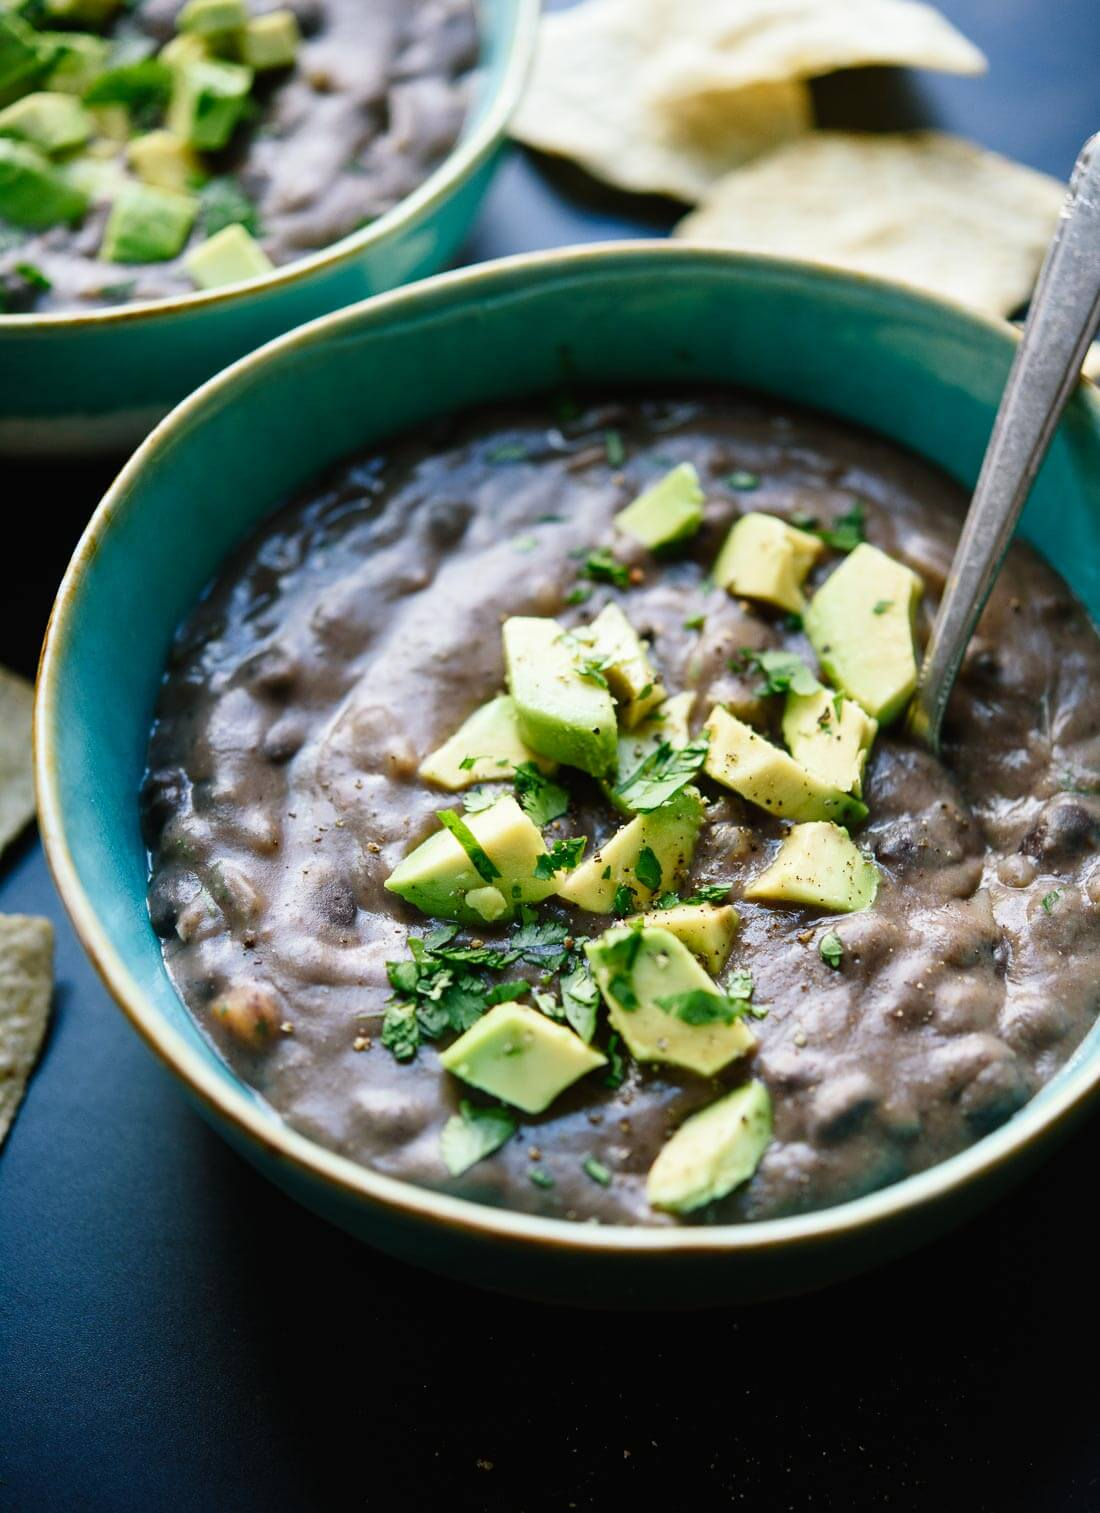 Spicy black bean soup recipe cookie and kate amazing vegetarian black bean soup ready in 45 minutes this soup makes great leftovers forumfinder Choice Image